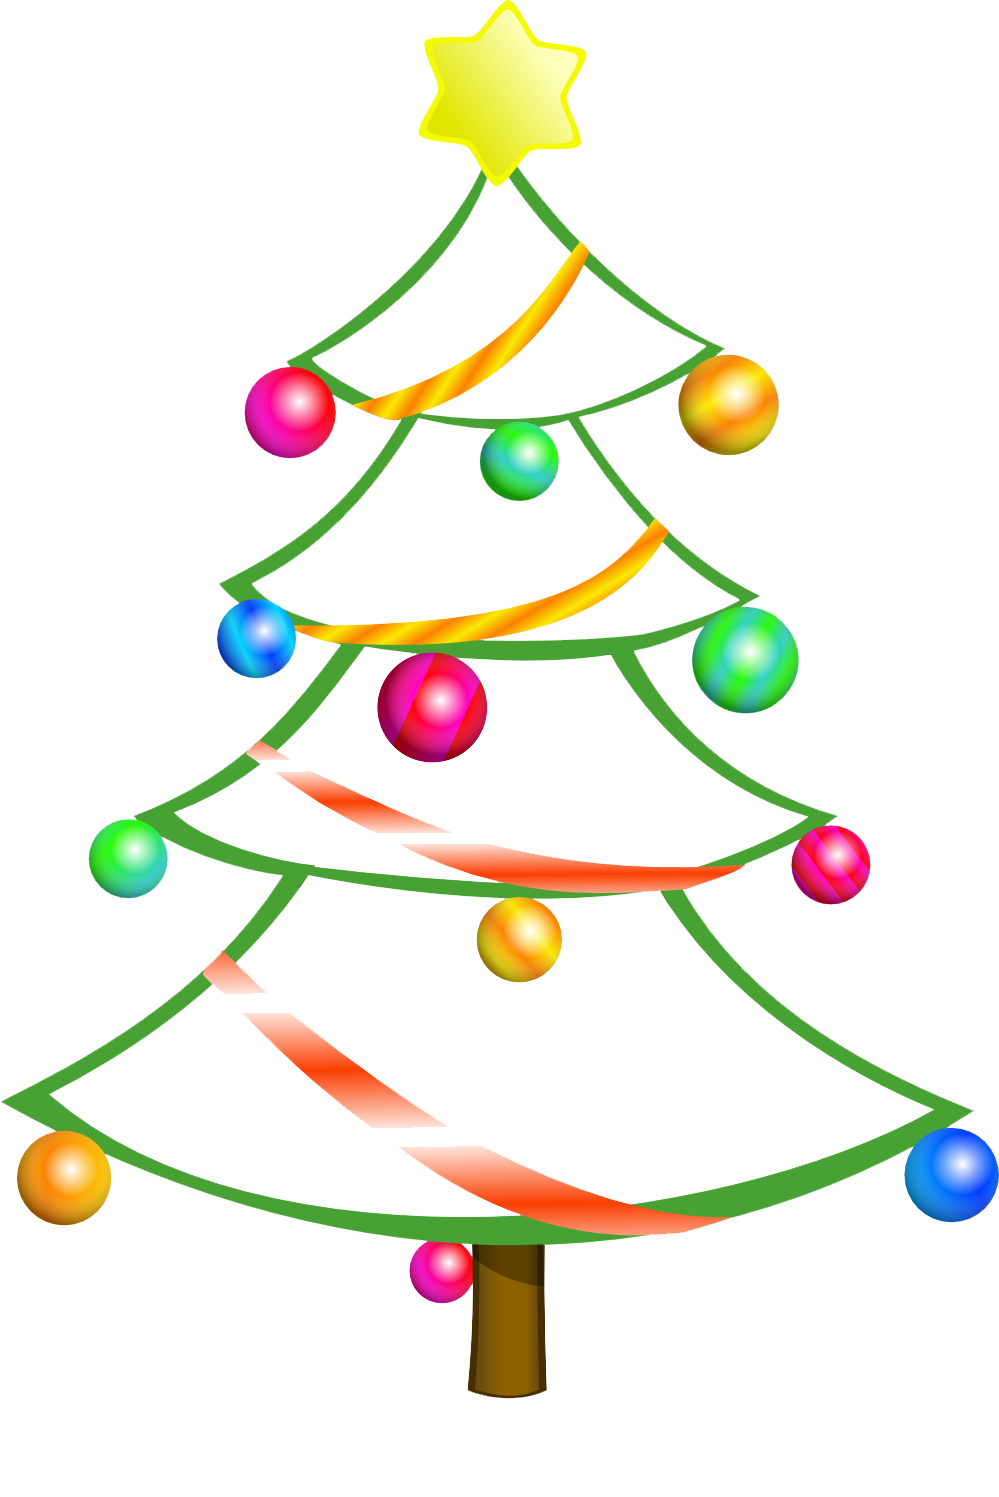 Free Christmas Tree Clip Art Borders-free christmas tree clip art borders-12